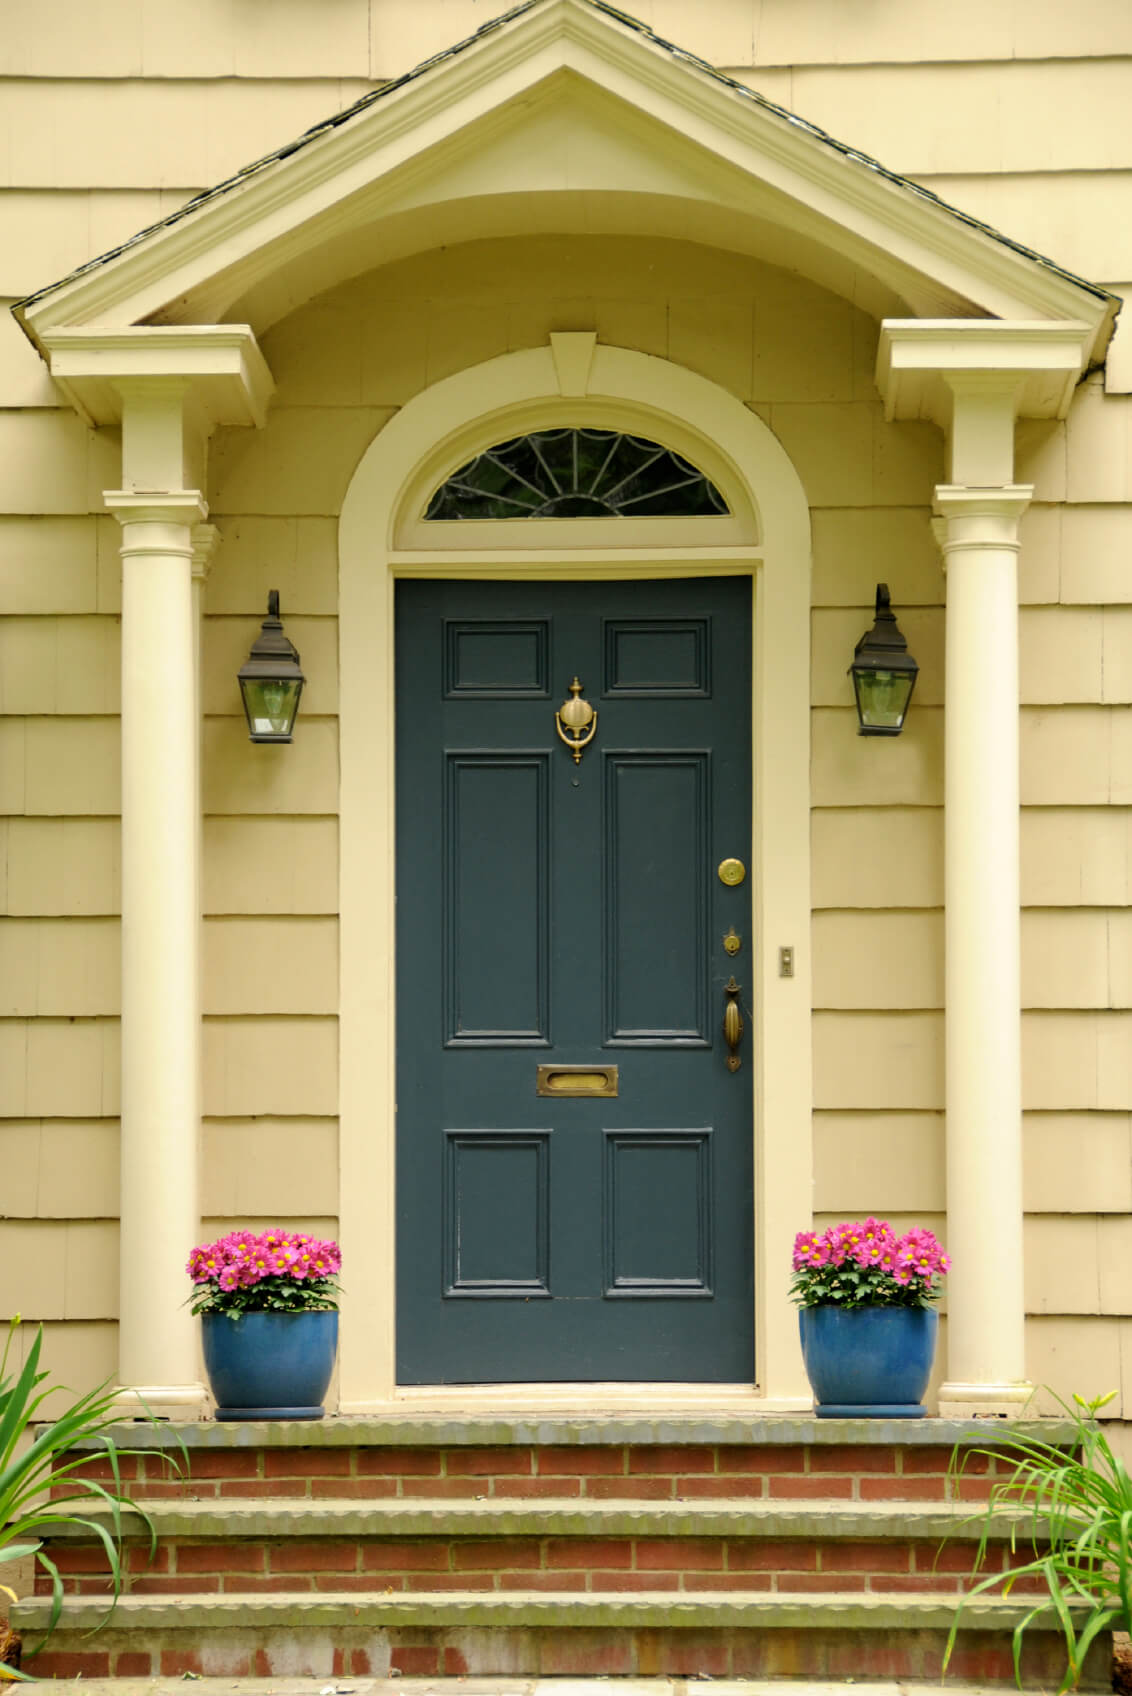 21 cool blue front doors for residential homes it has a teal blue door with brass locks rubansaba